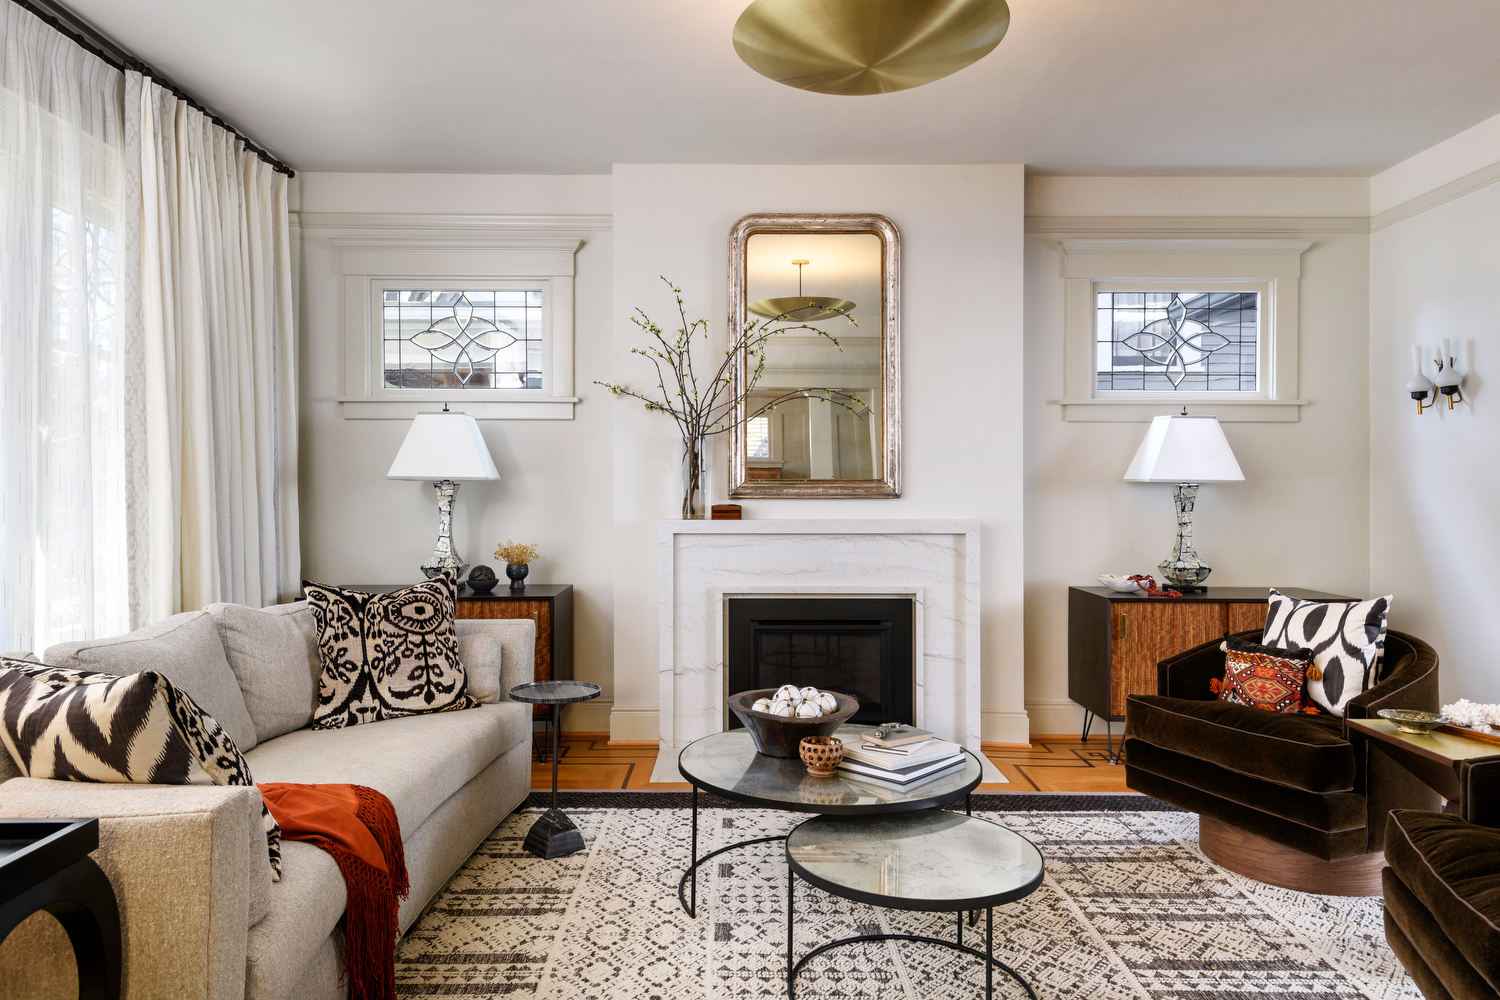 Holland Stephens Interiors - View south into the living room with new custom marble fireplace and vintage mirror. Touch of modern with a brass, disc chandelier.